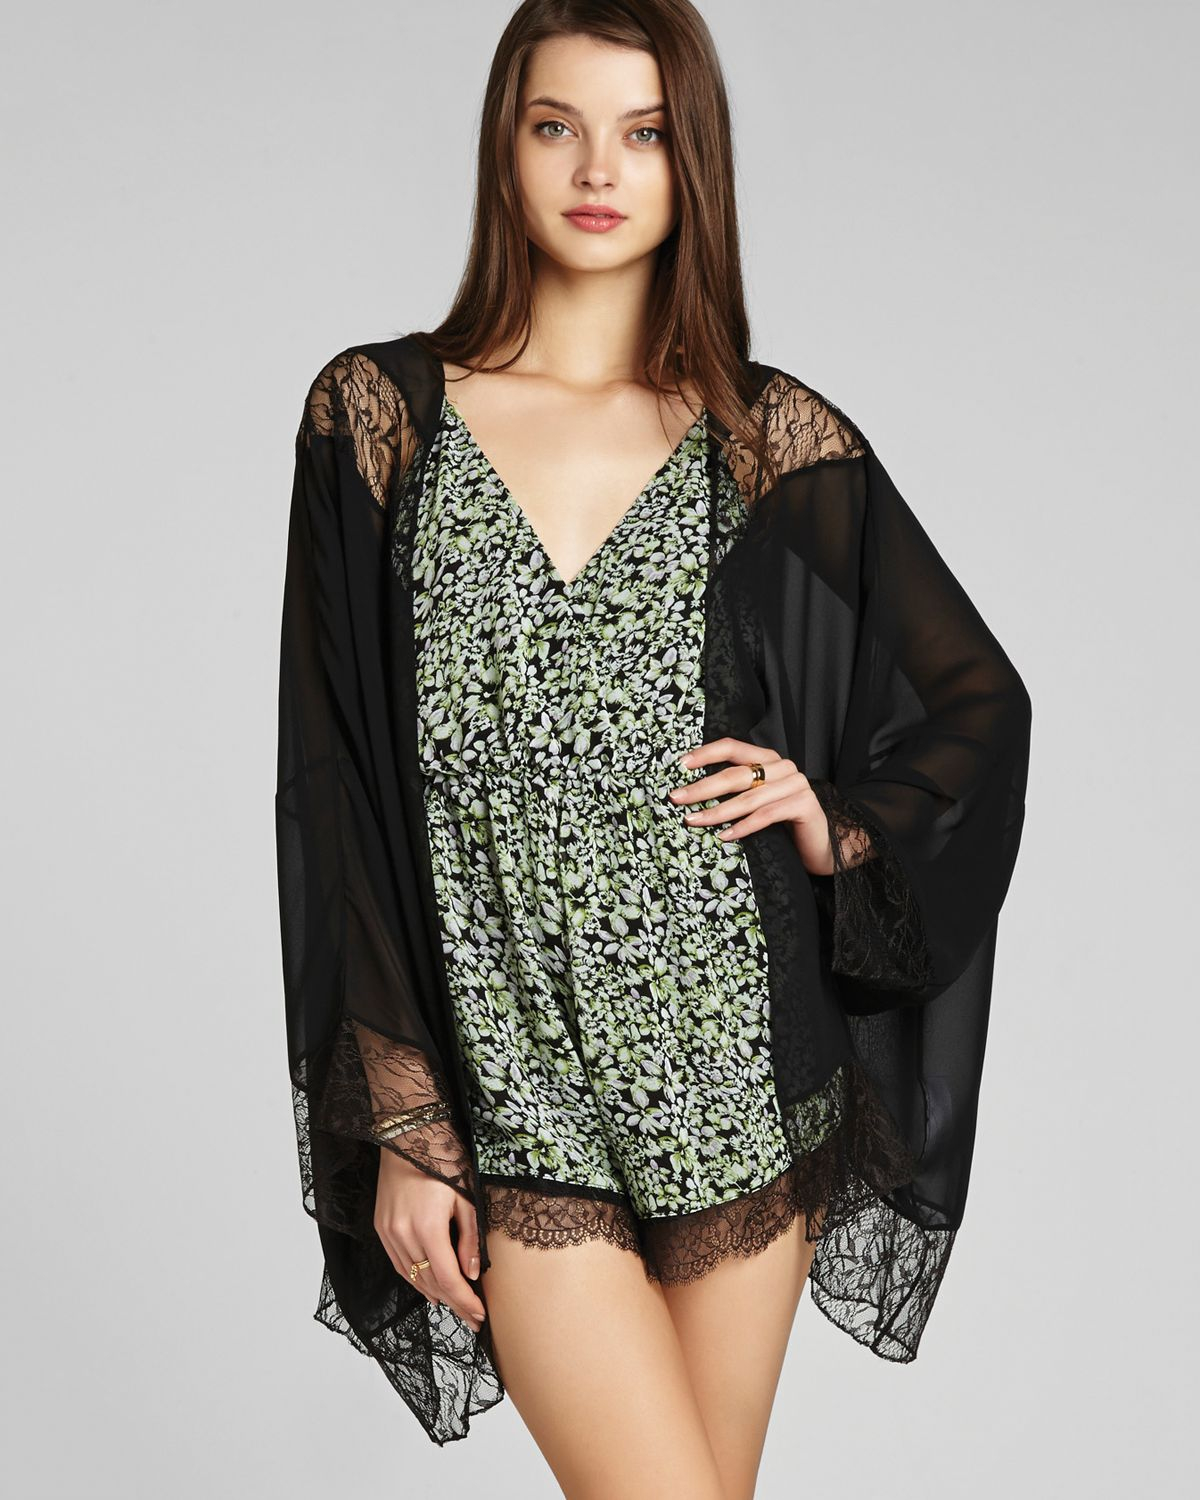 Bcbgeneration Kimono Cardigan High Low Lace in Black | Lyst